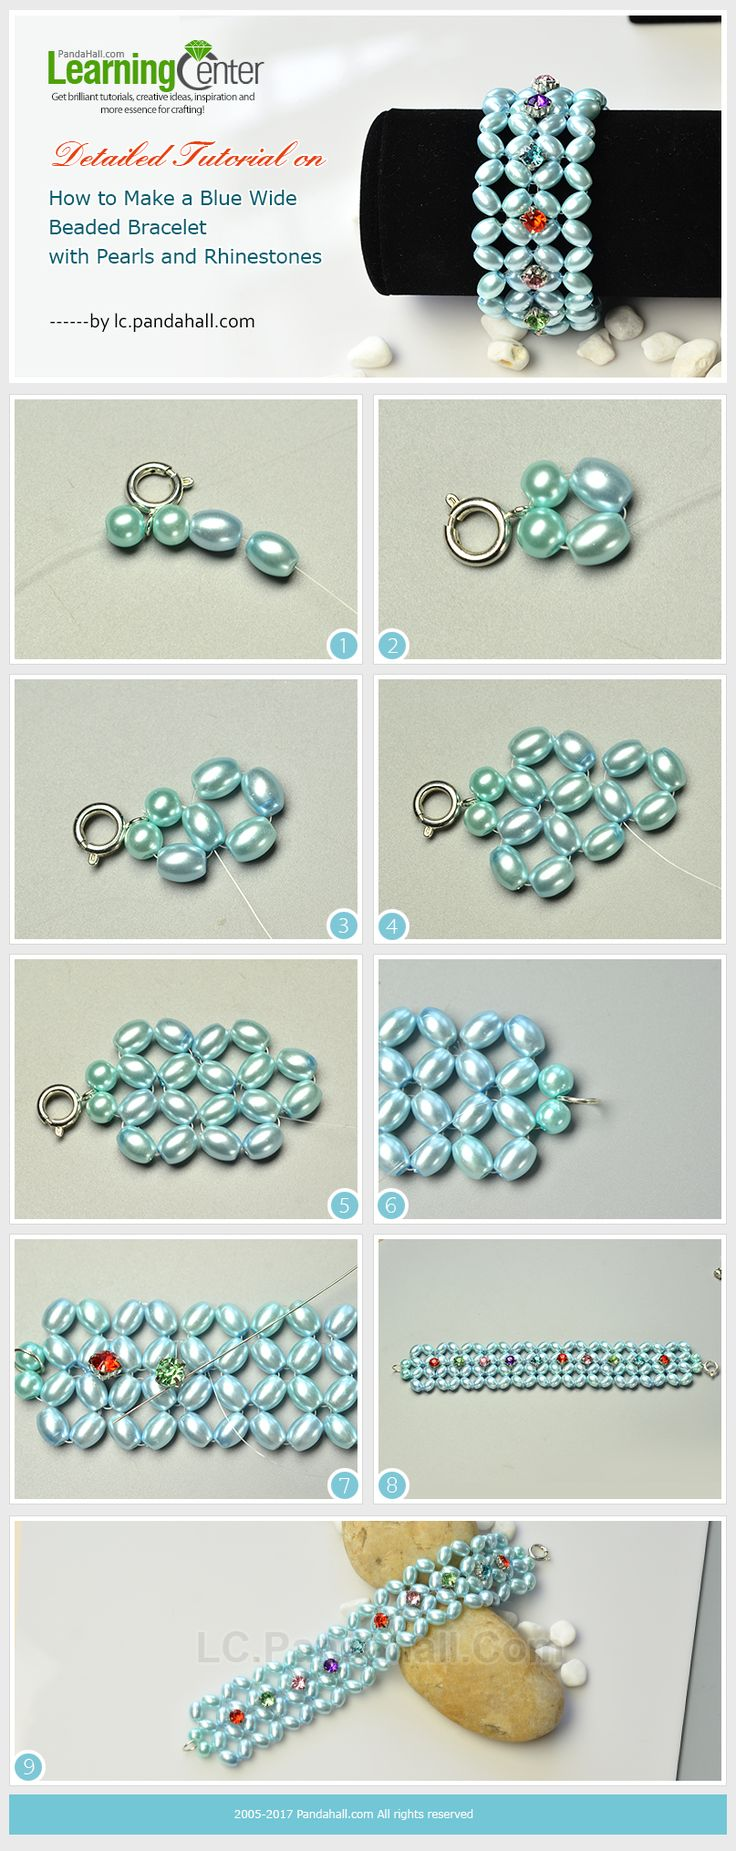 Detailed Tutorial on How to Make a Blue Wide Beaded Bracelet with Pearls and Rhinestones